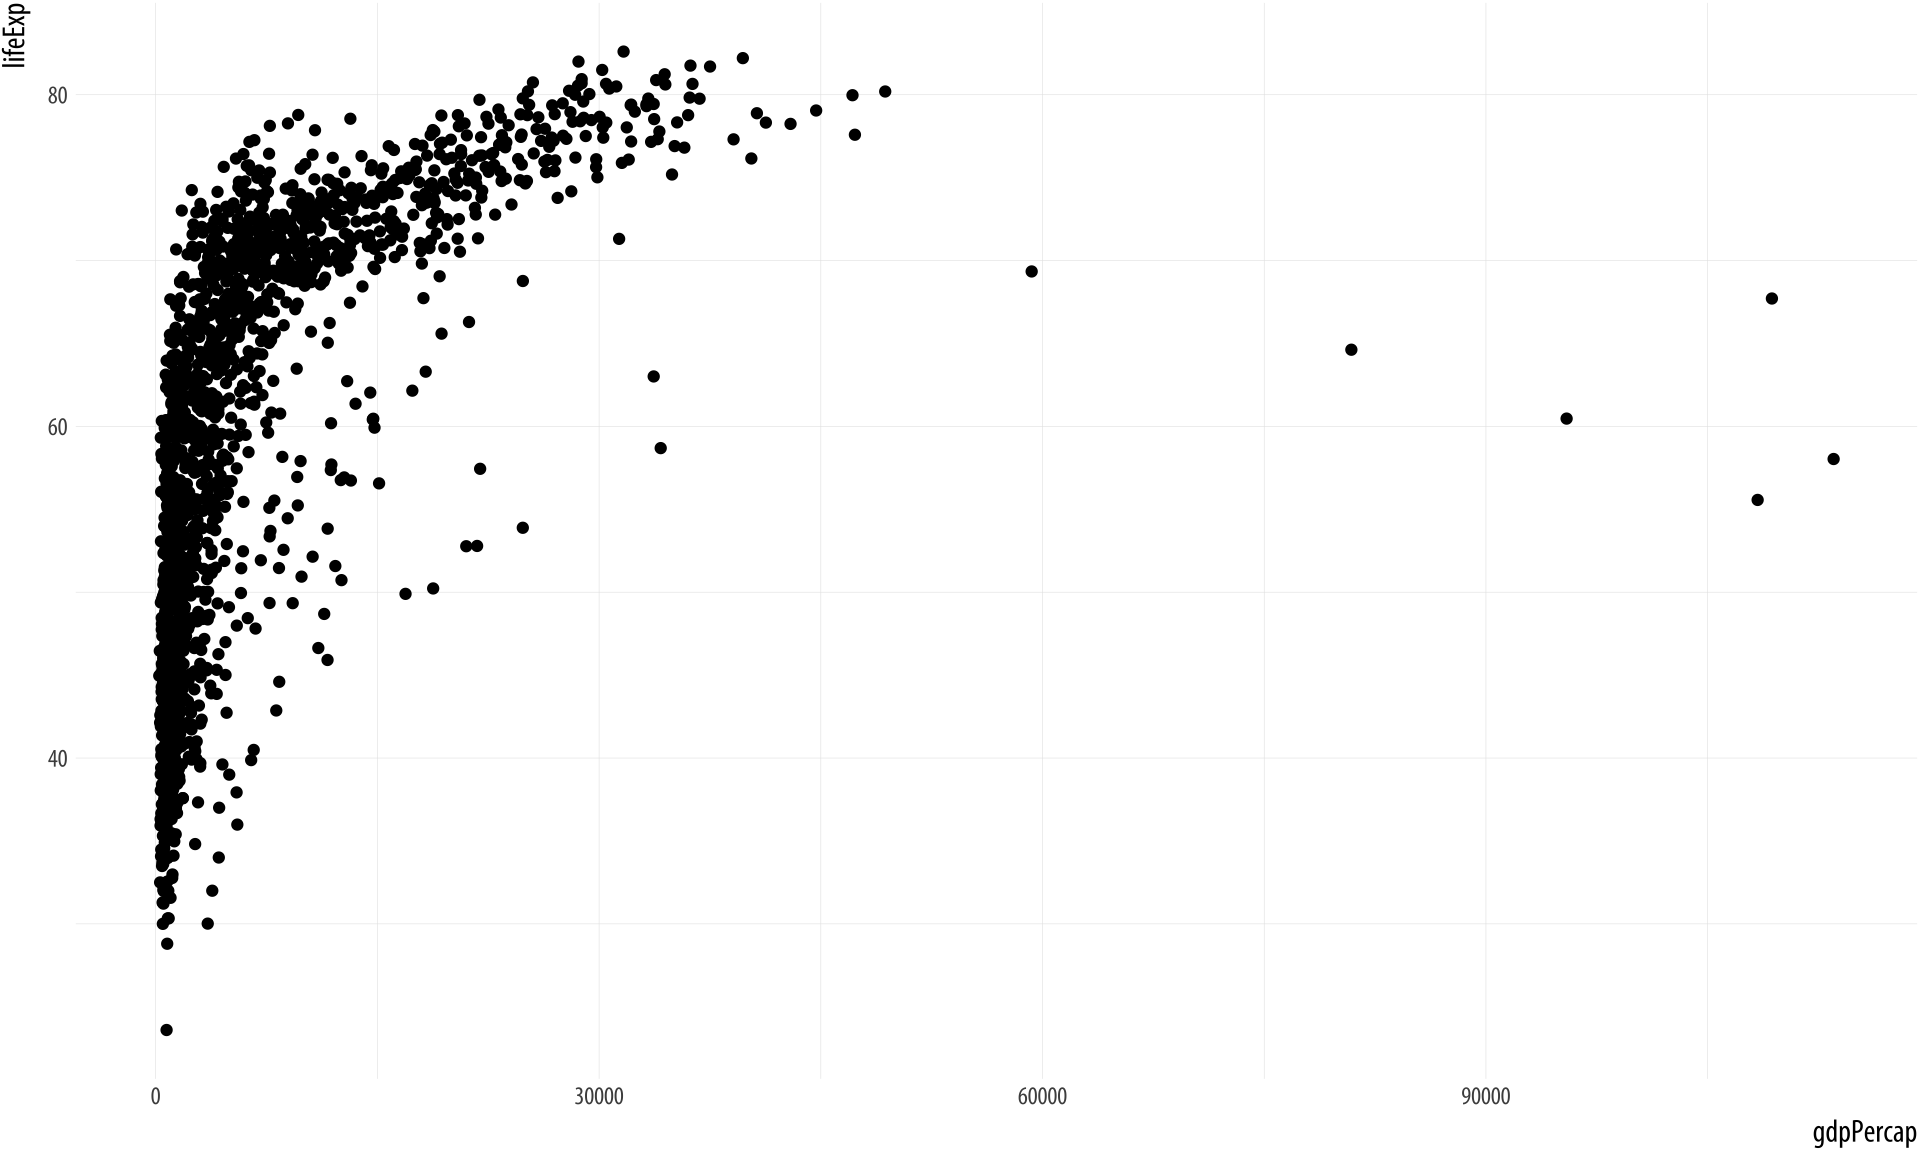 Life expectancy plotted against GDP per capita for a large number of country-years.